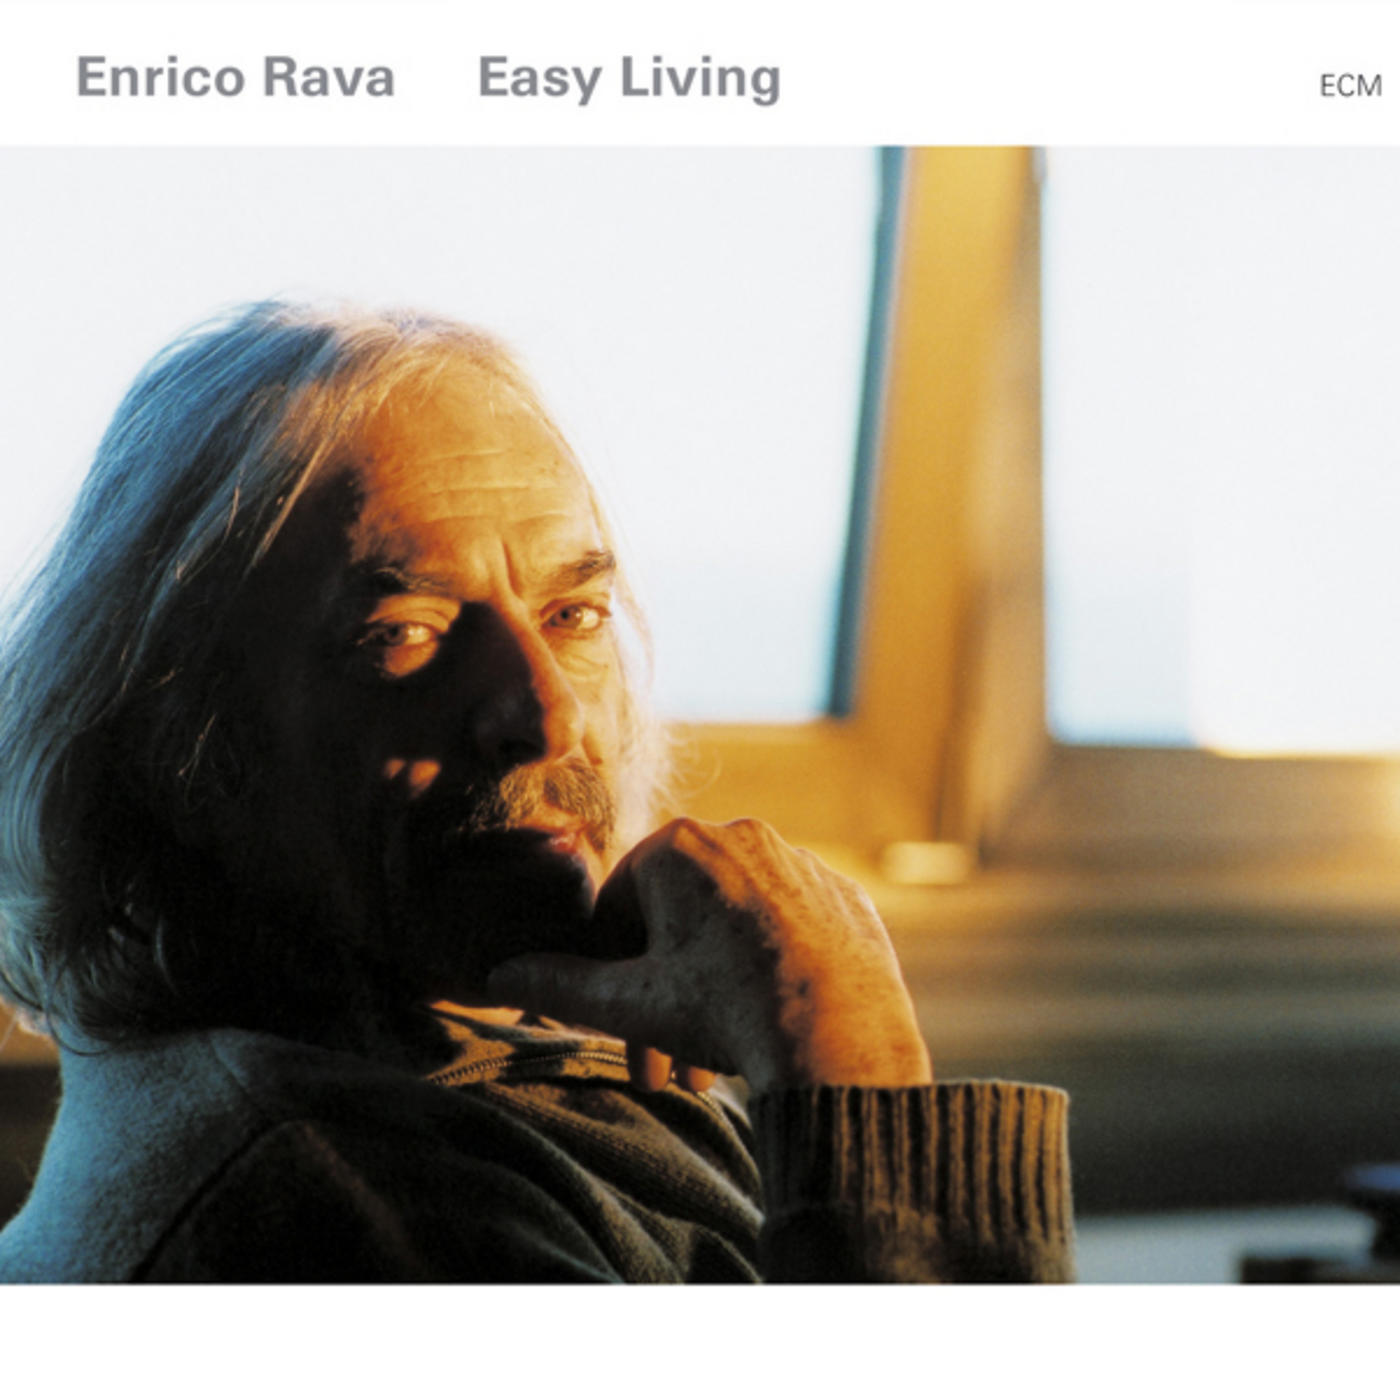 Enrico Rava Between Sound And Space